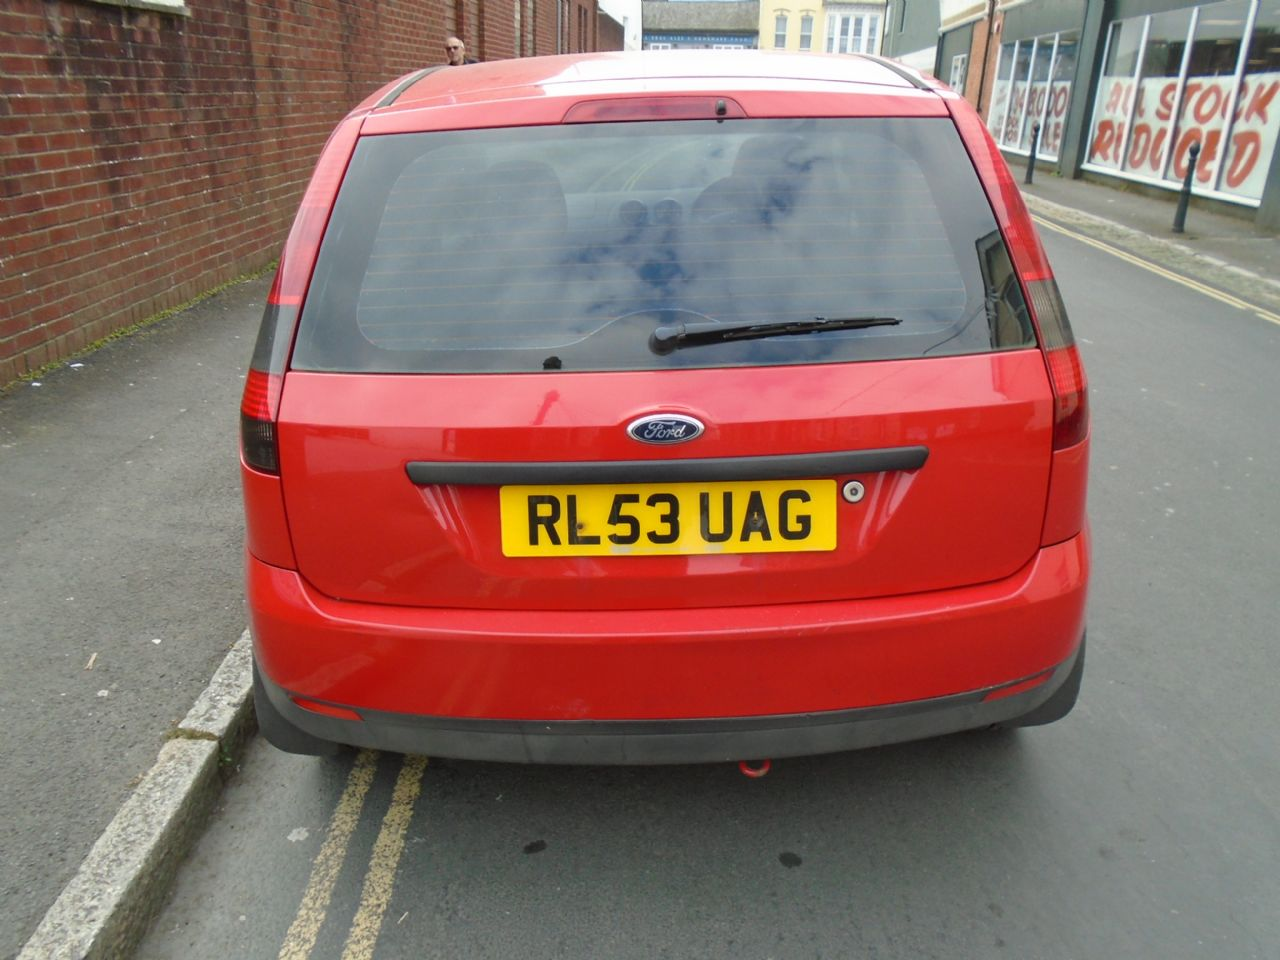 FORD FIESTA 1.4i 16v LX A/C - Picture 4